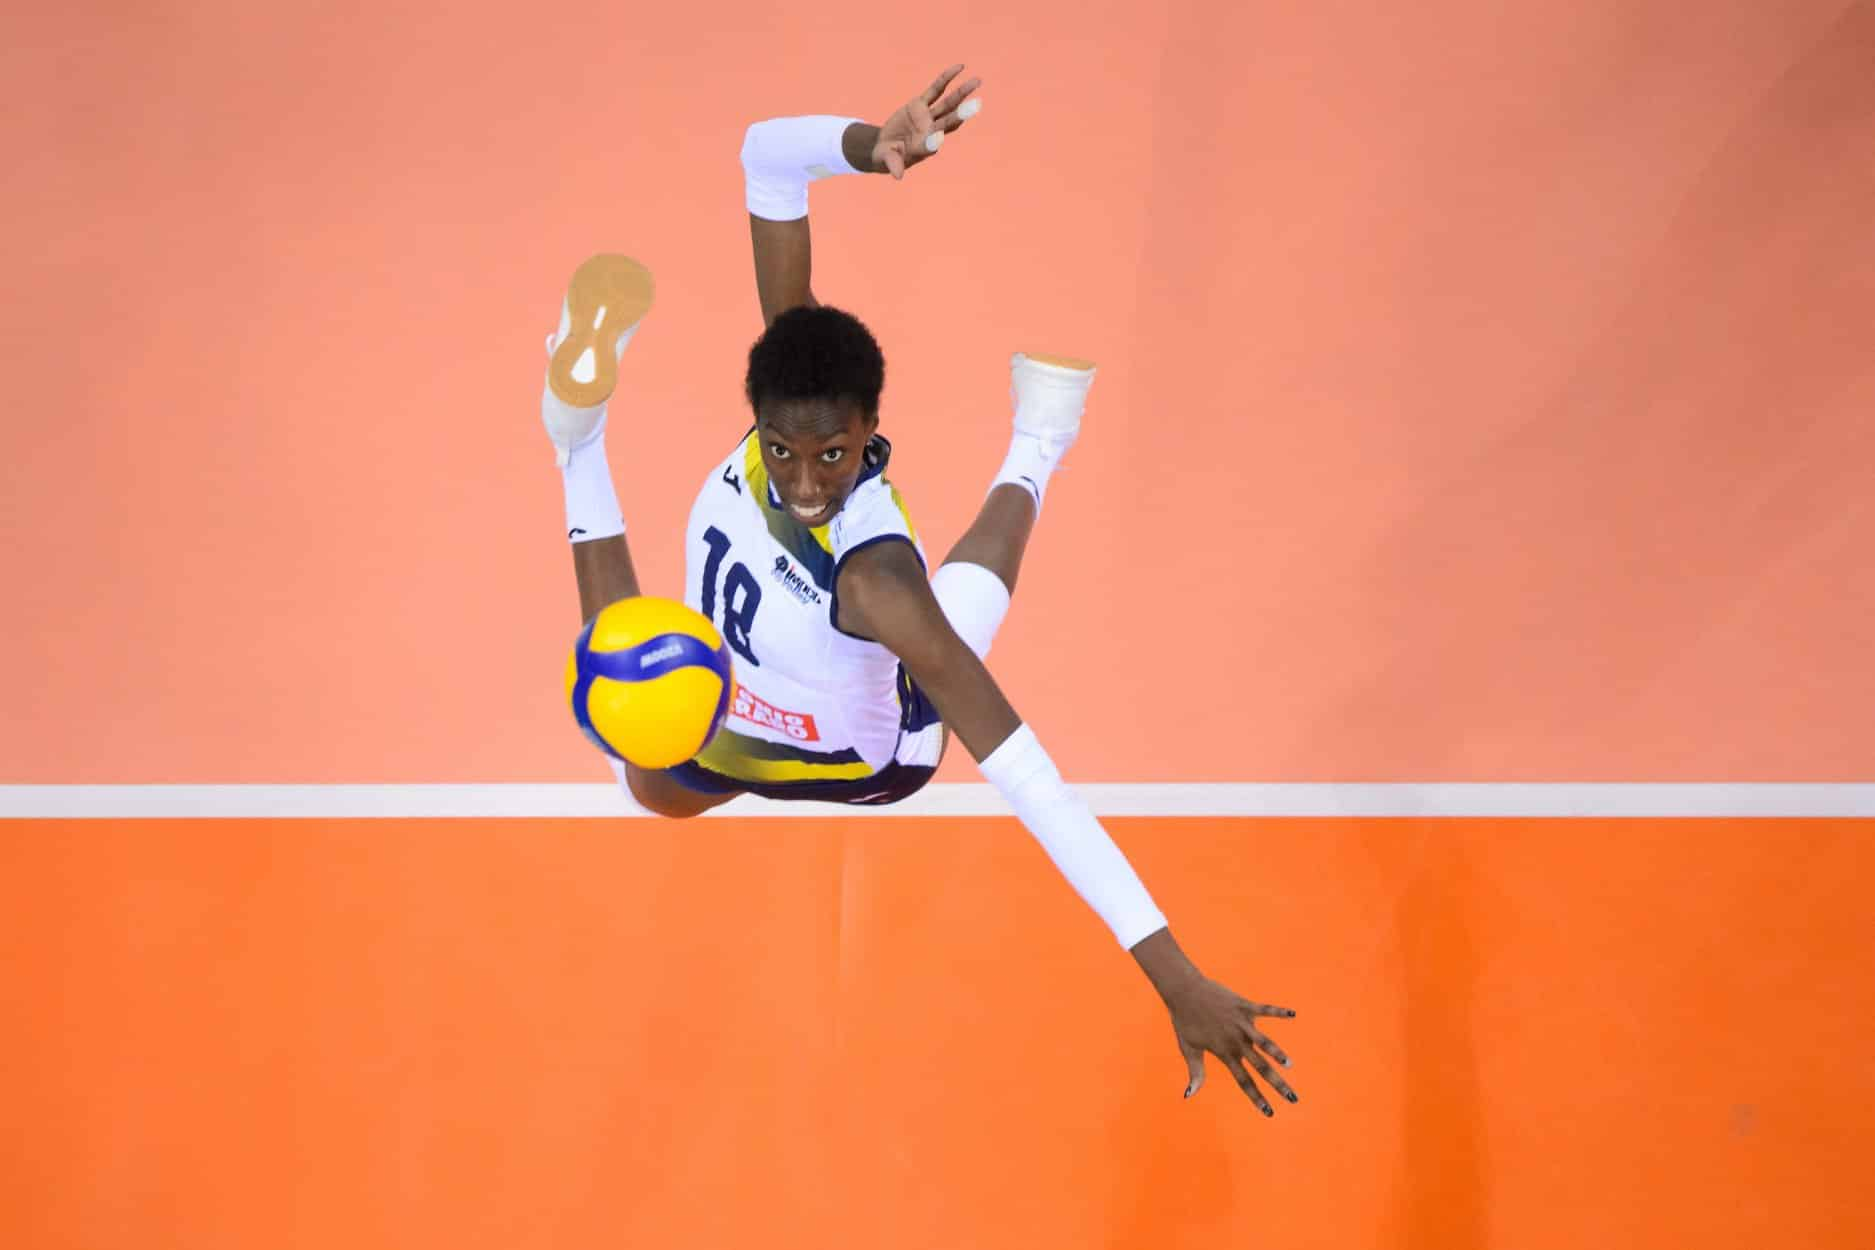 paola-egonu-imoco-volley-adidas-crazyflight-x3-mid-volleypack-2019-2